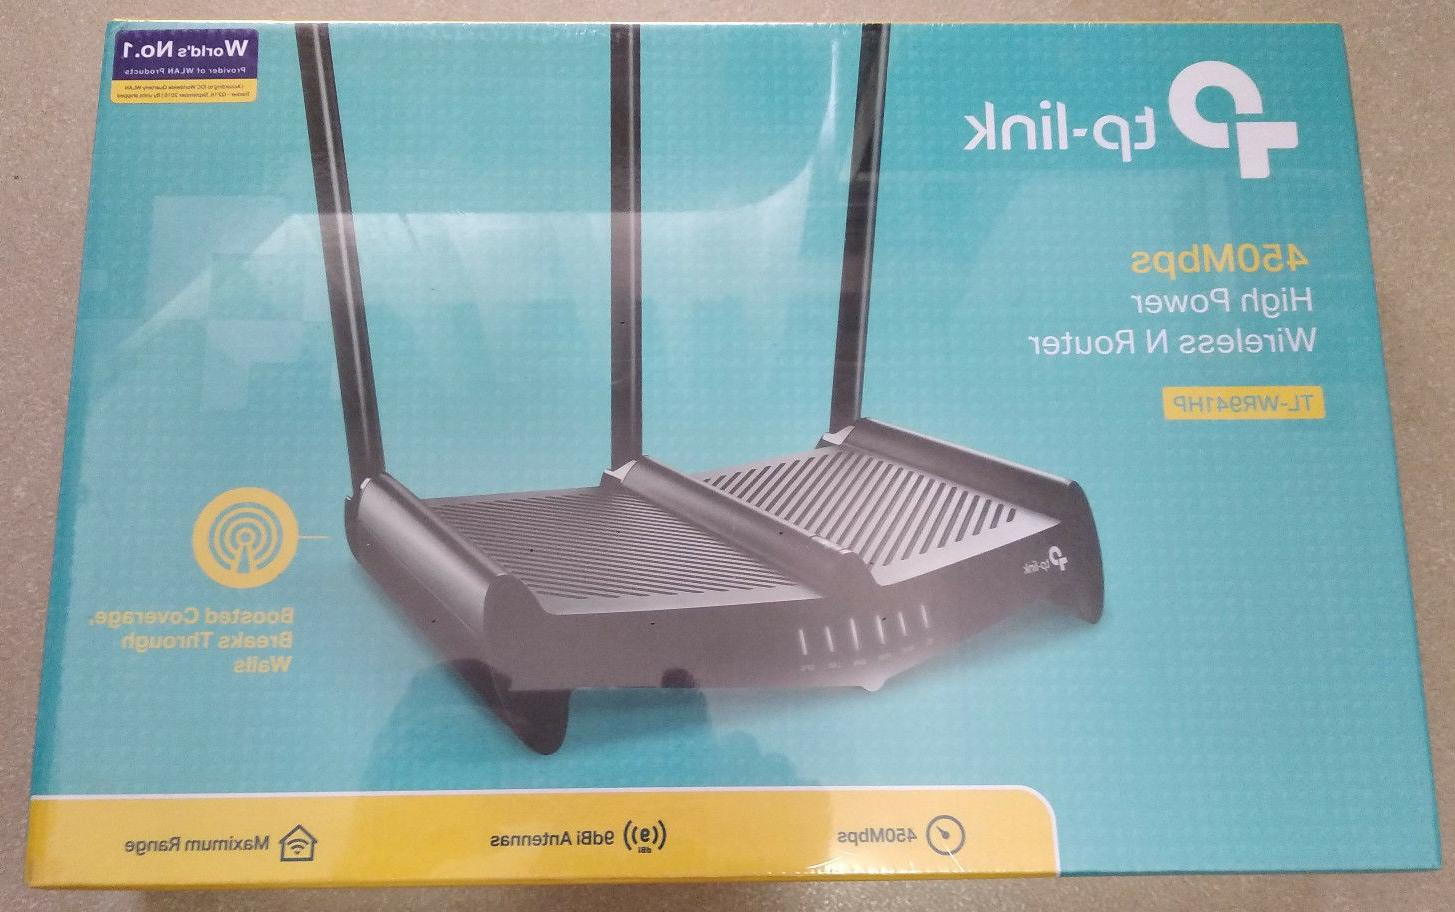 TP-Link TL-WR941HP 450Mbps High Power Wi-Fi Router LAN